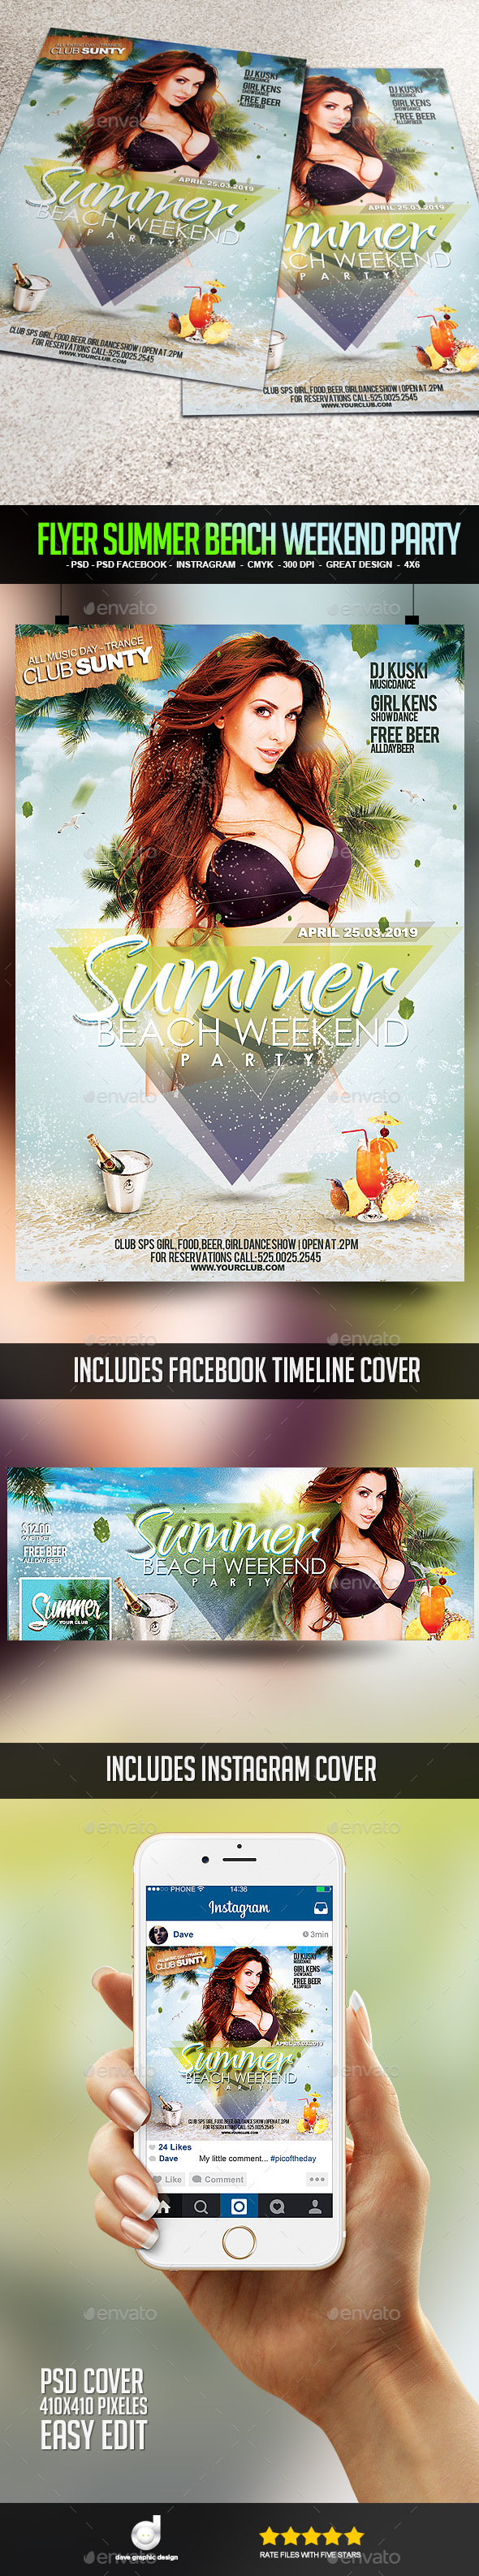 Flyer Summer Beach Weekend Party - Clubs & Parties Events